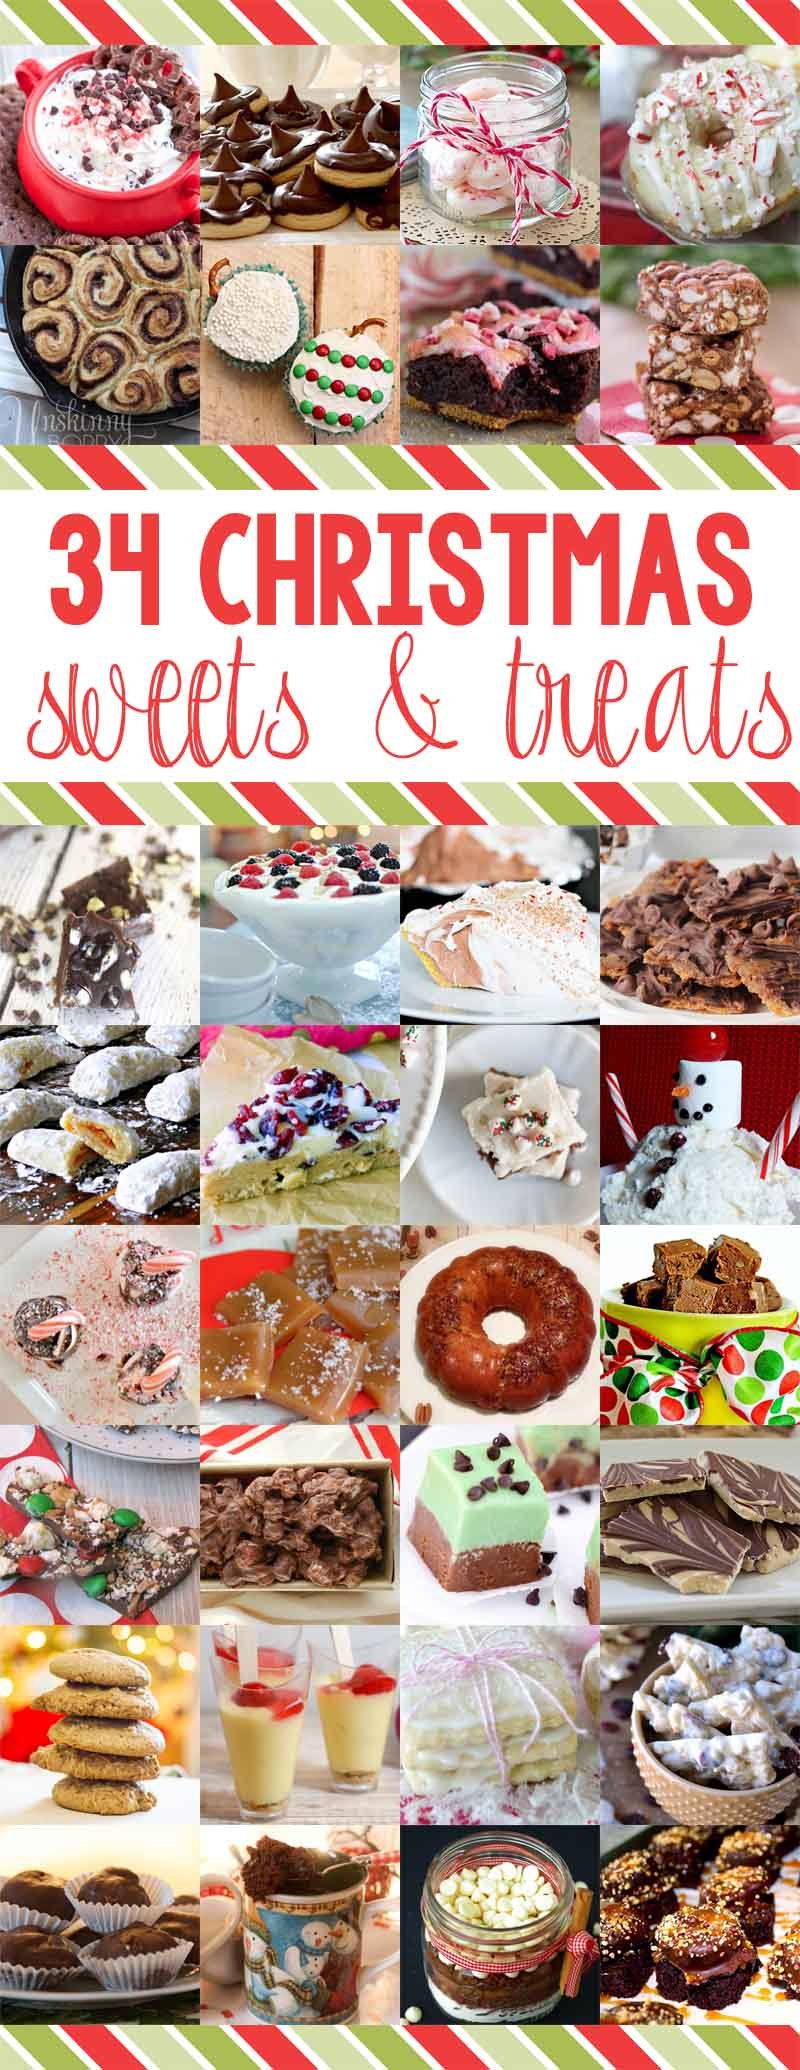 Christmas Baking Ideas 34 Sweets And Treats Recipes Setting For Four